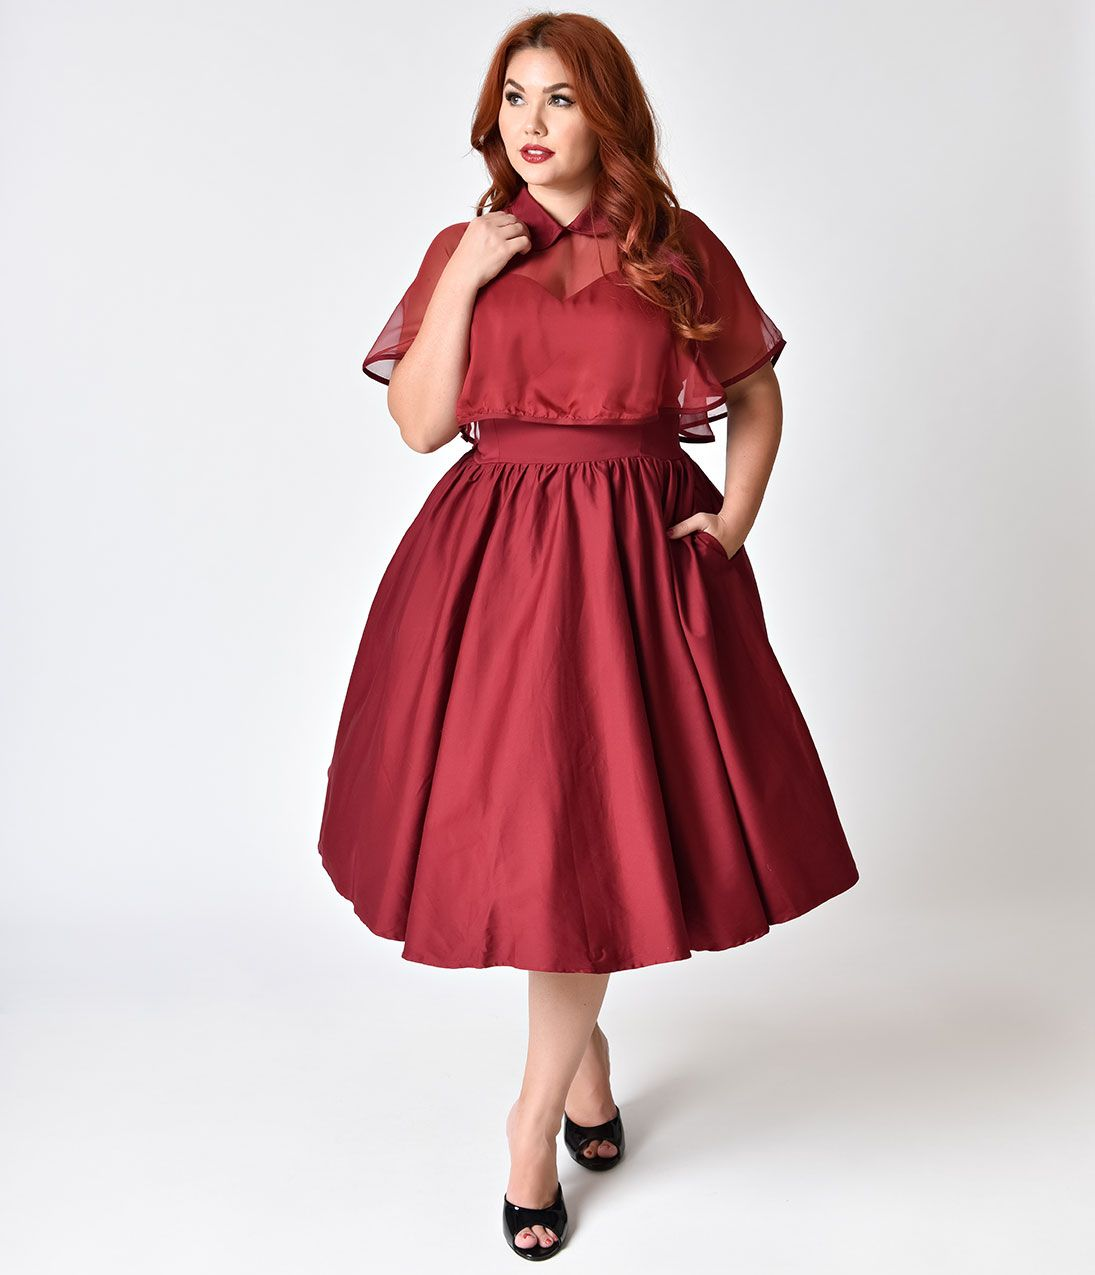 Vintage Style Christmas Dresses, Sweaters, Clothing ...